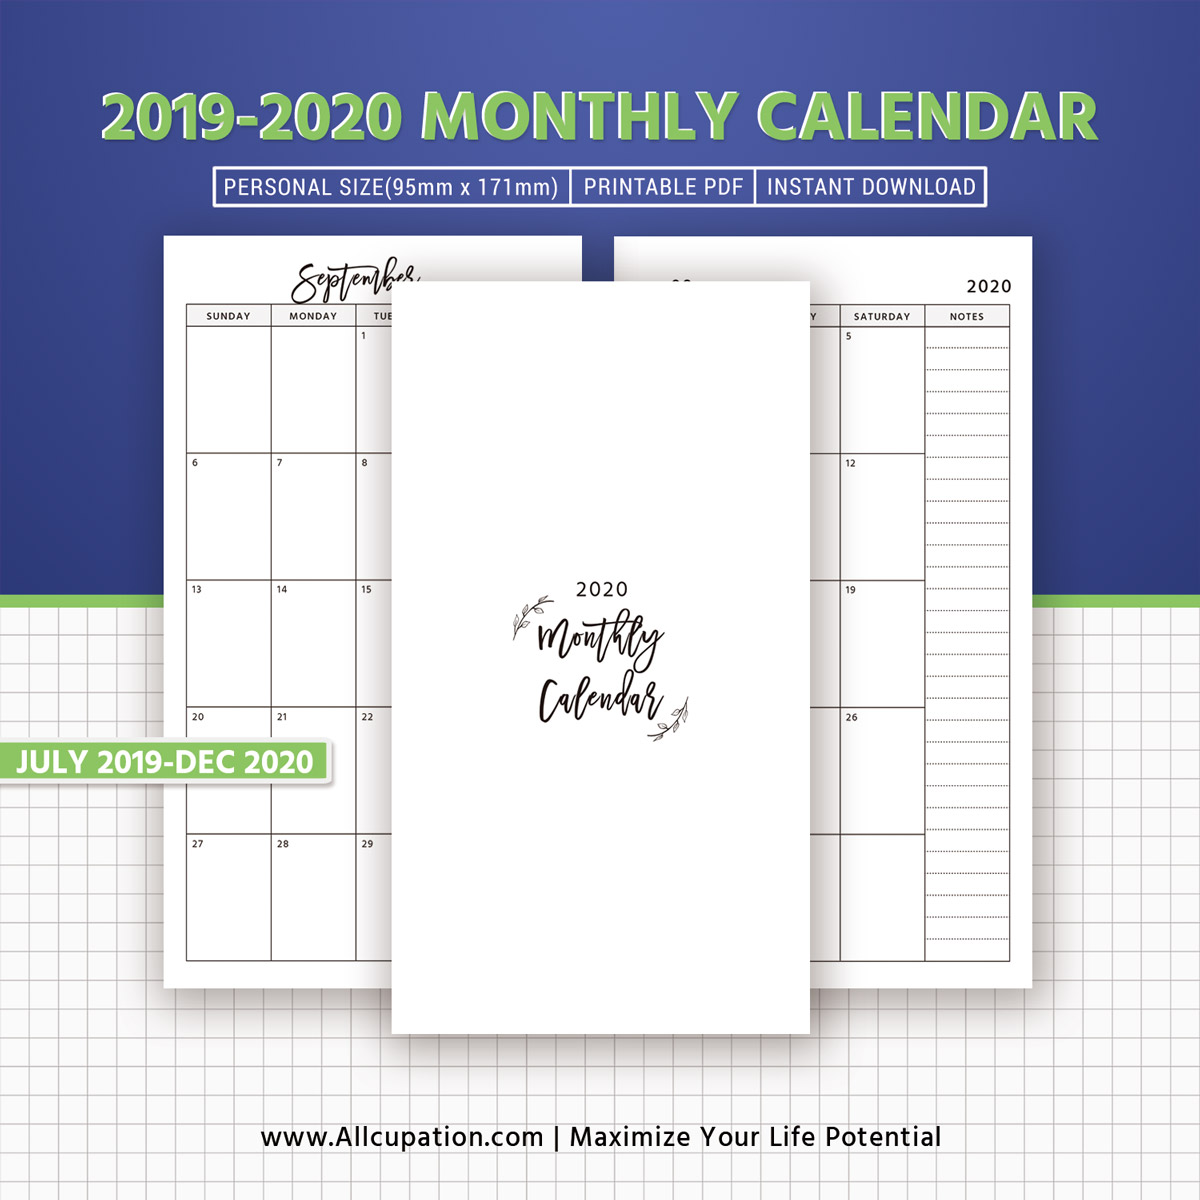 picture regarding Happy Planner Monthly Layout Printable identify 2019-2020 Regular monthly Calendar, 18-Thirty day period Dated Calendar, Every month Planner, Thirty day period upon 2 Webpages, Printable Person Measurement, Planner Inserts, Least difficult Planner